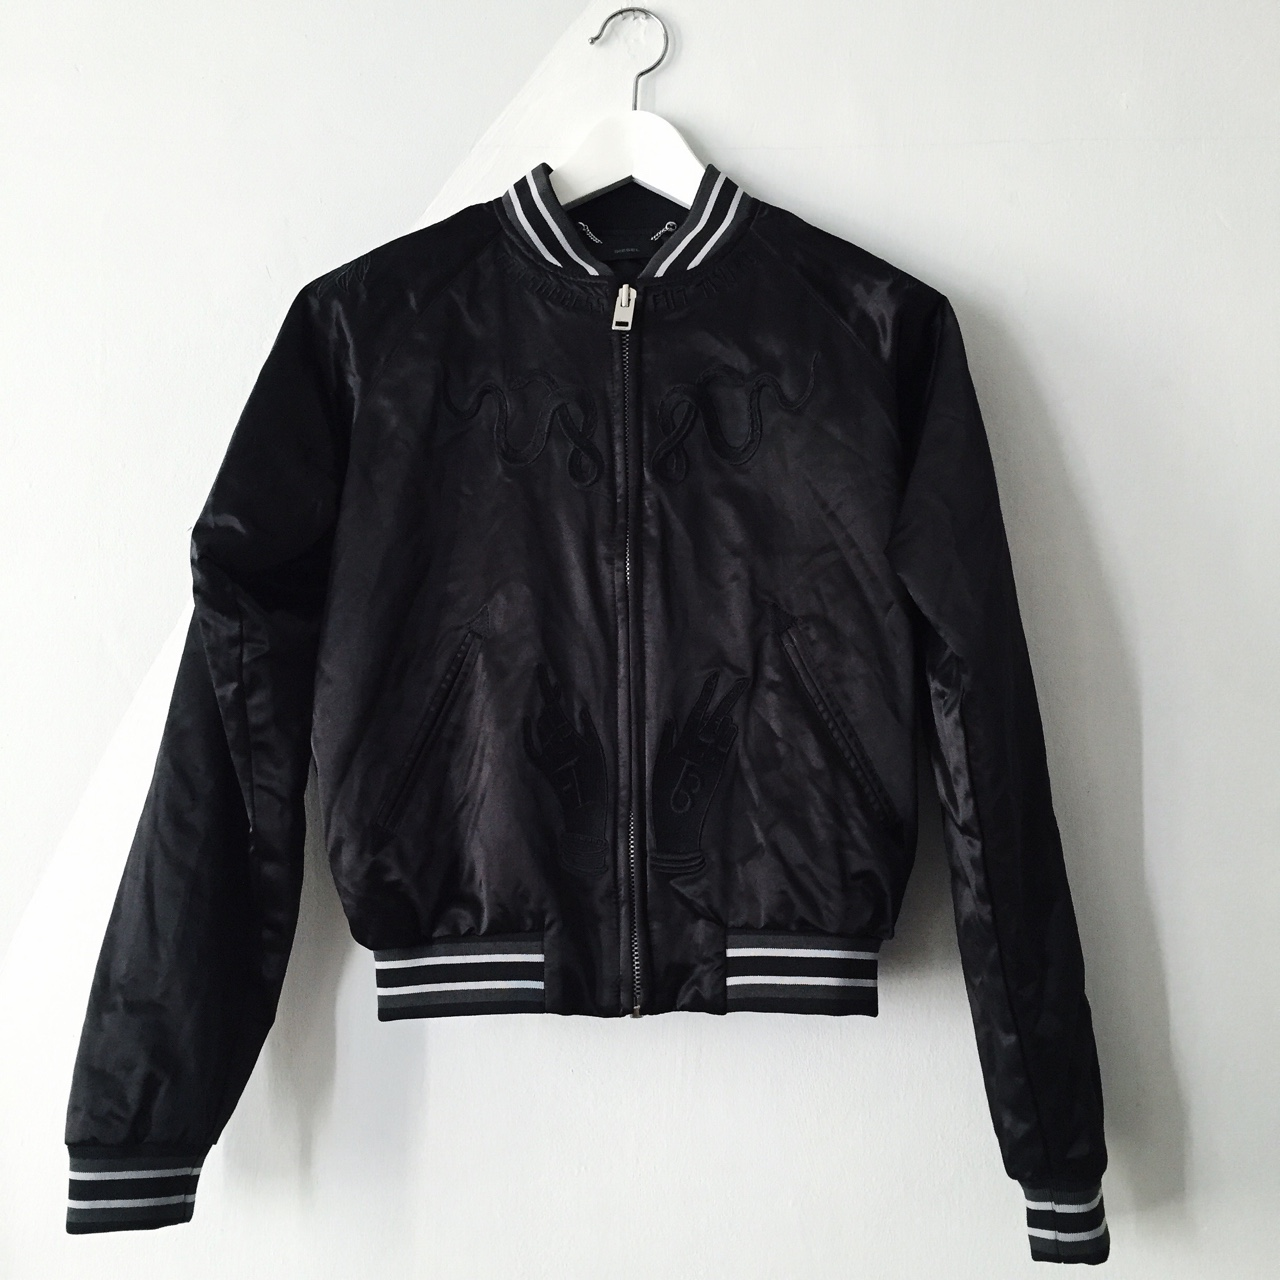 DIESEL satin bomber jacket featuring an embroided    - Depop